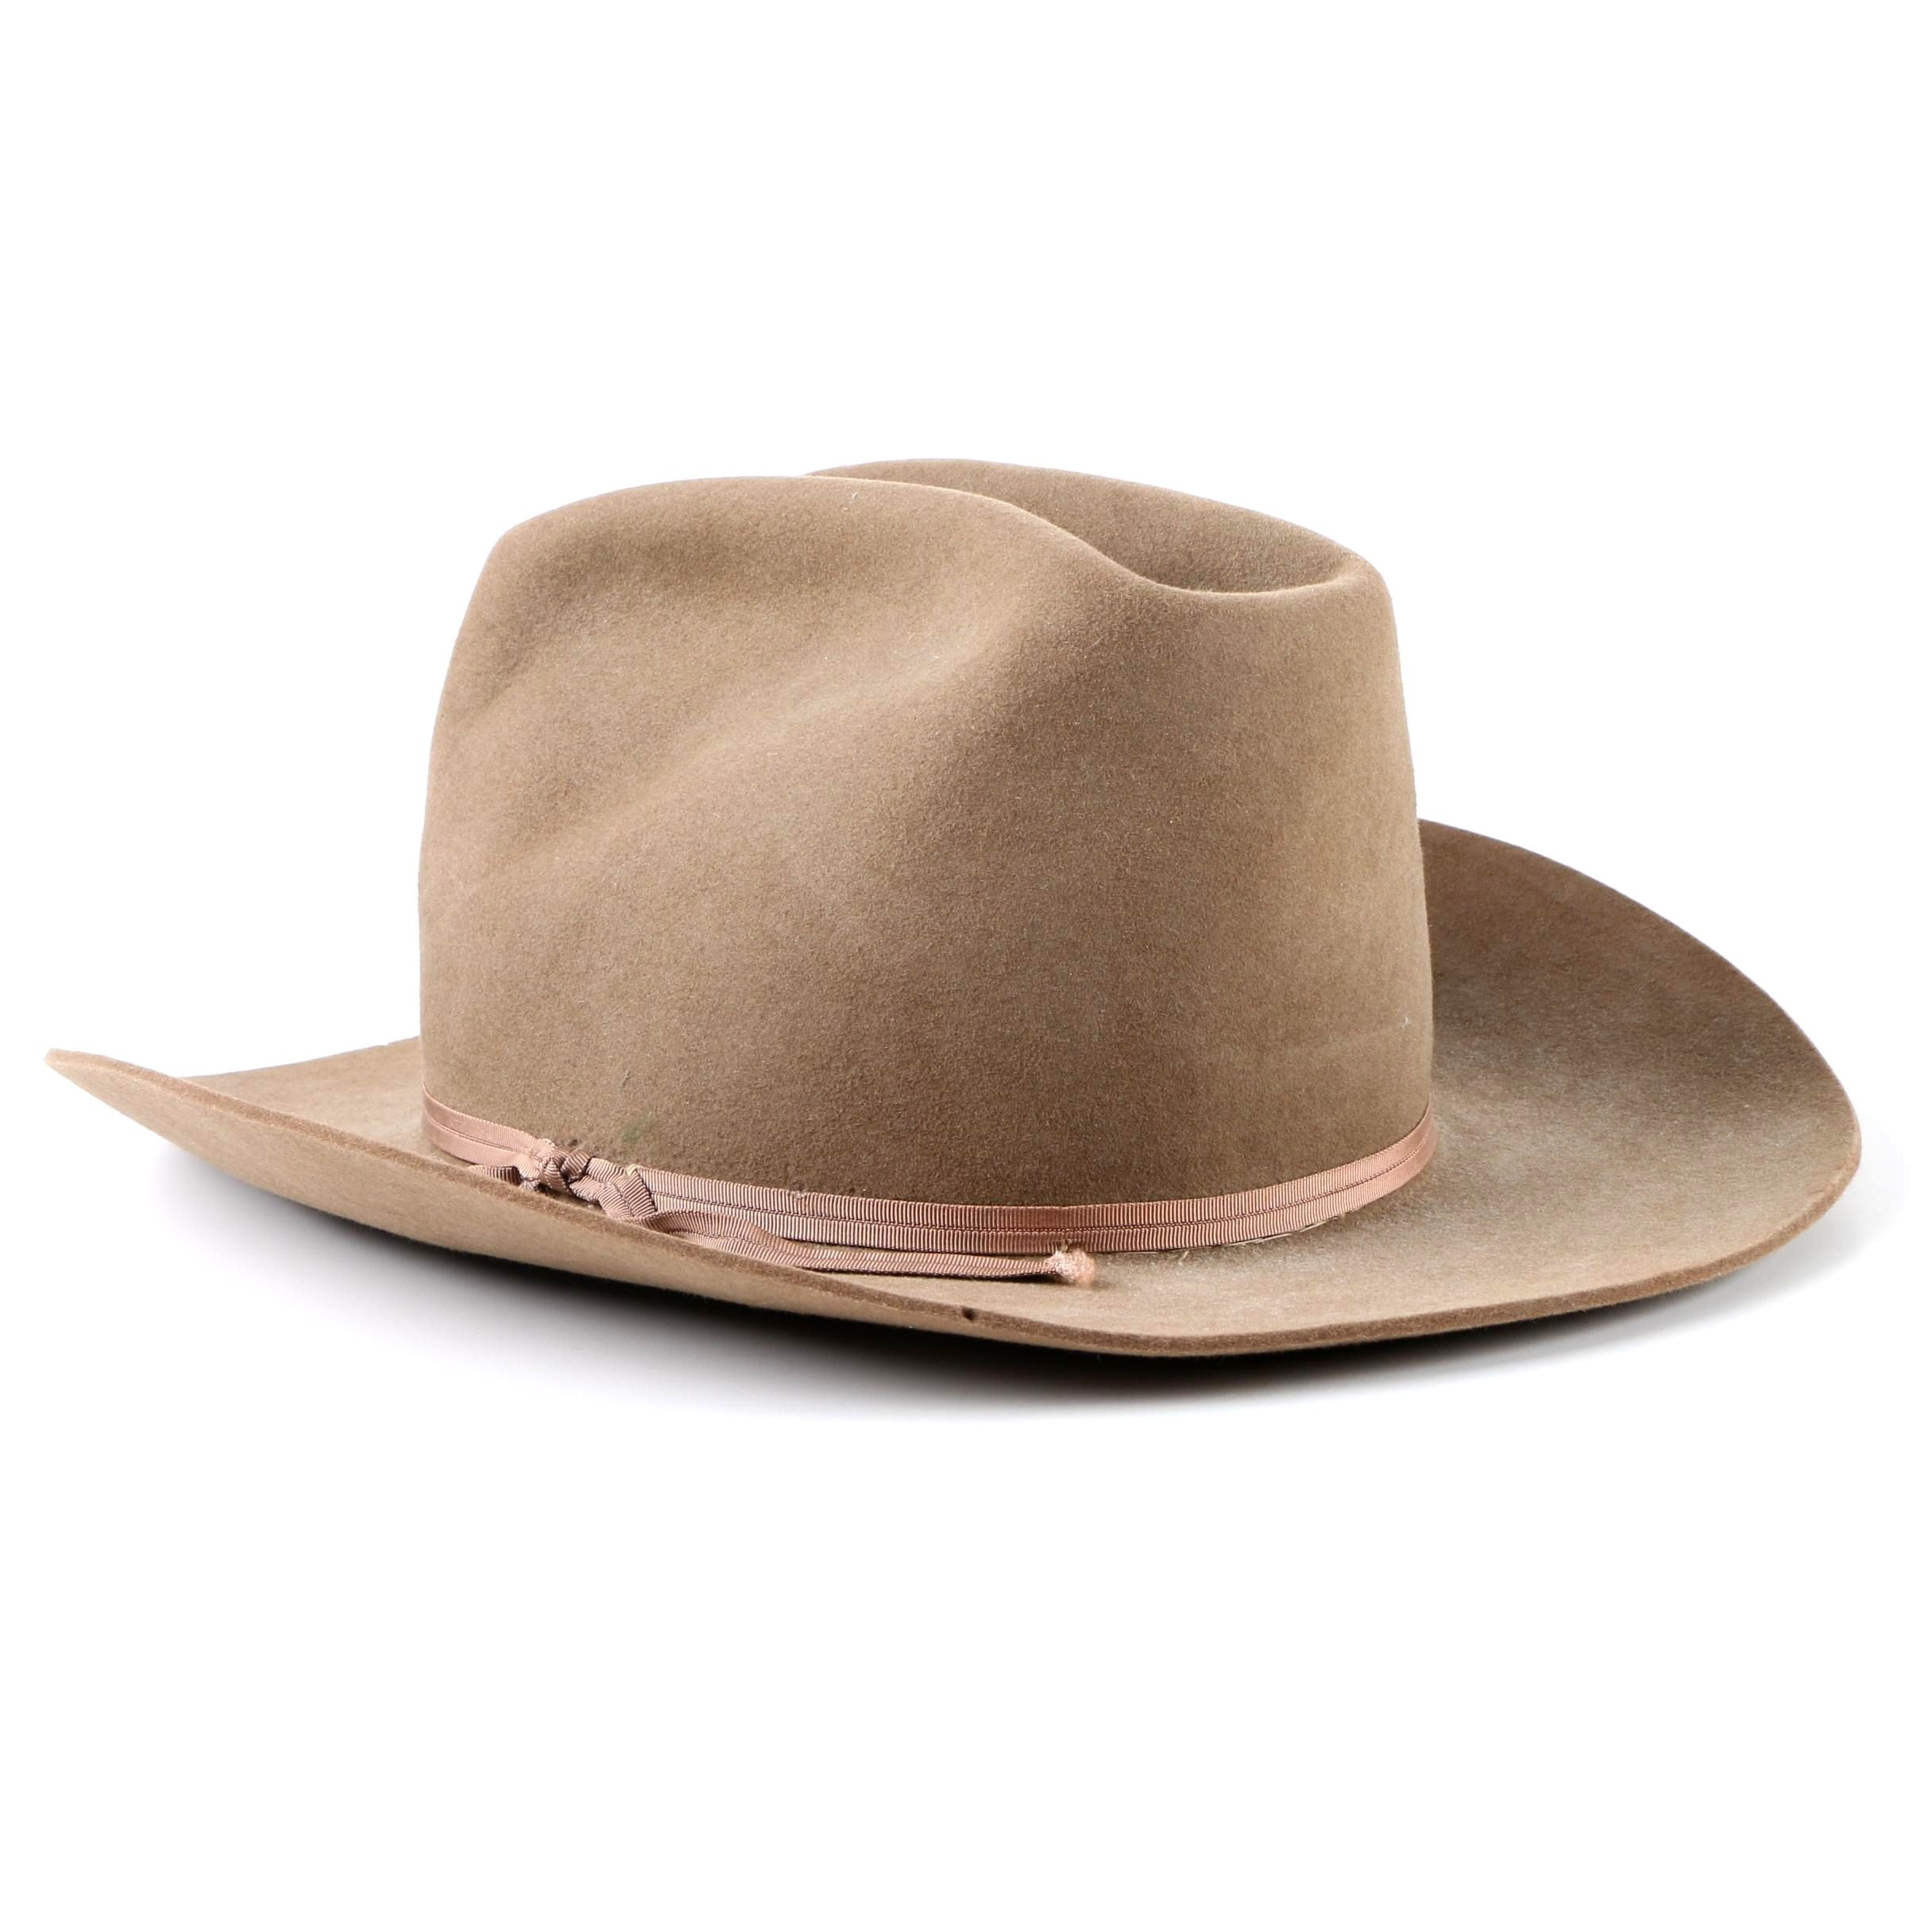 Men's Vintage Stetson Tan Felted Beaver Fur Western Hat